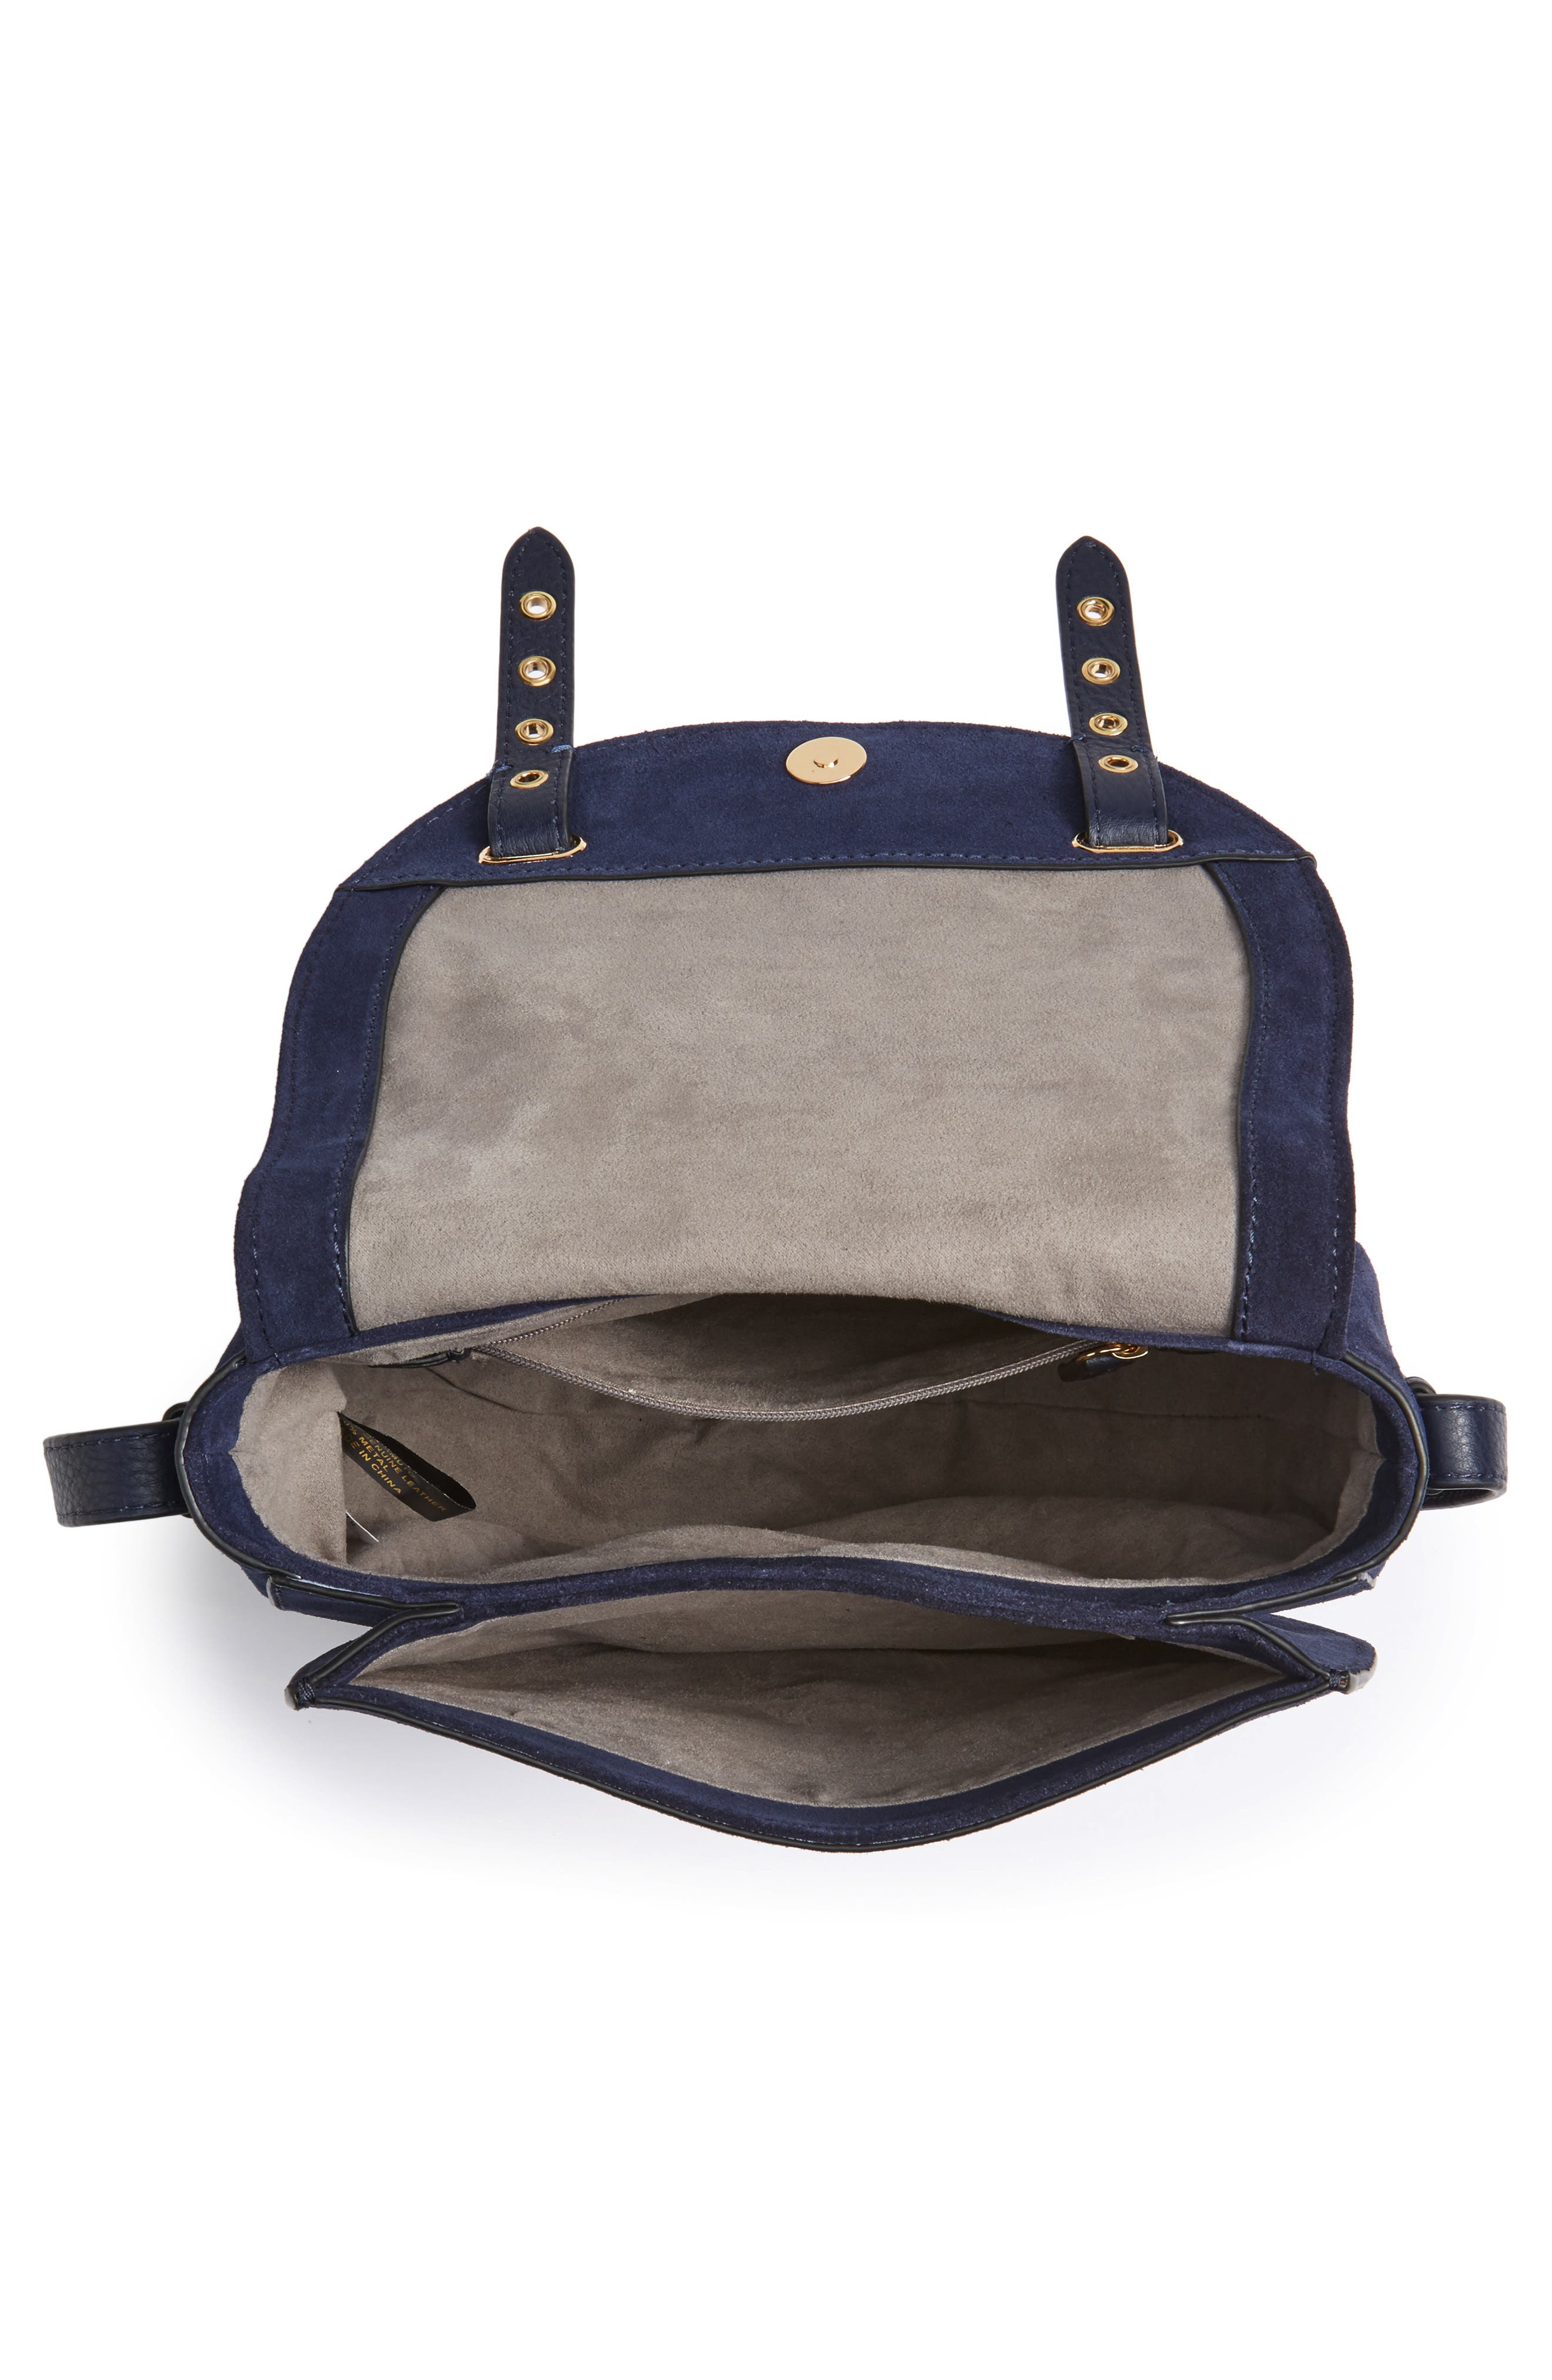 Areli Suede & Leather Crossbody Saddle Bag,                             Alternate thumbnail 4, color,                             Winter Navy